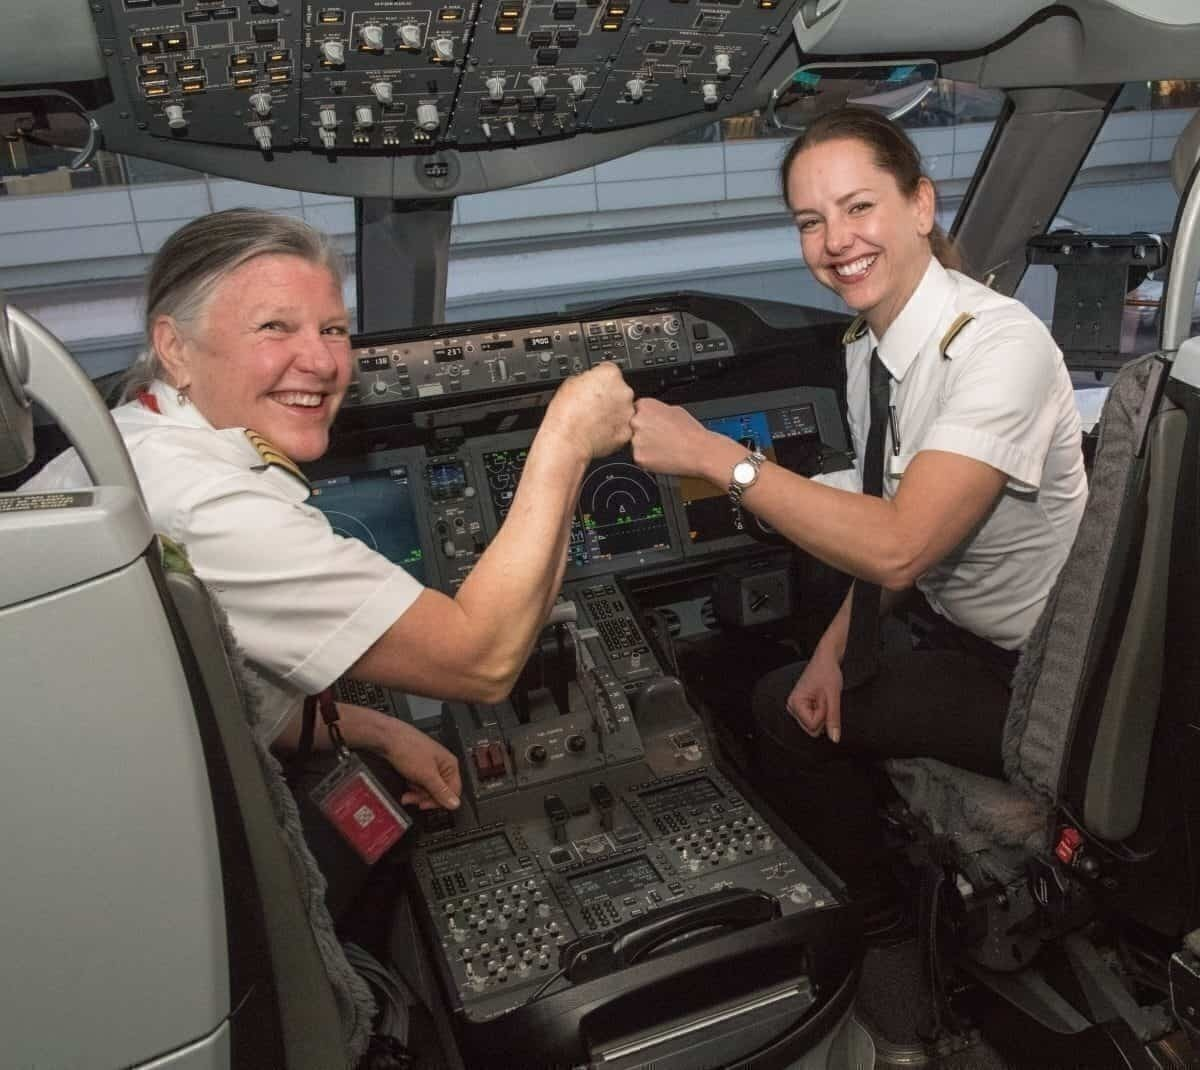 Air Canada Will Now Use Gender Neutral Announcements Onboard Flights